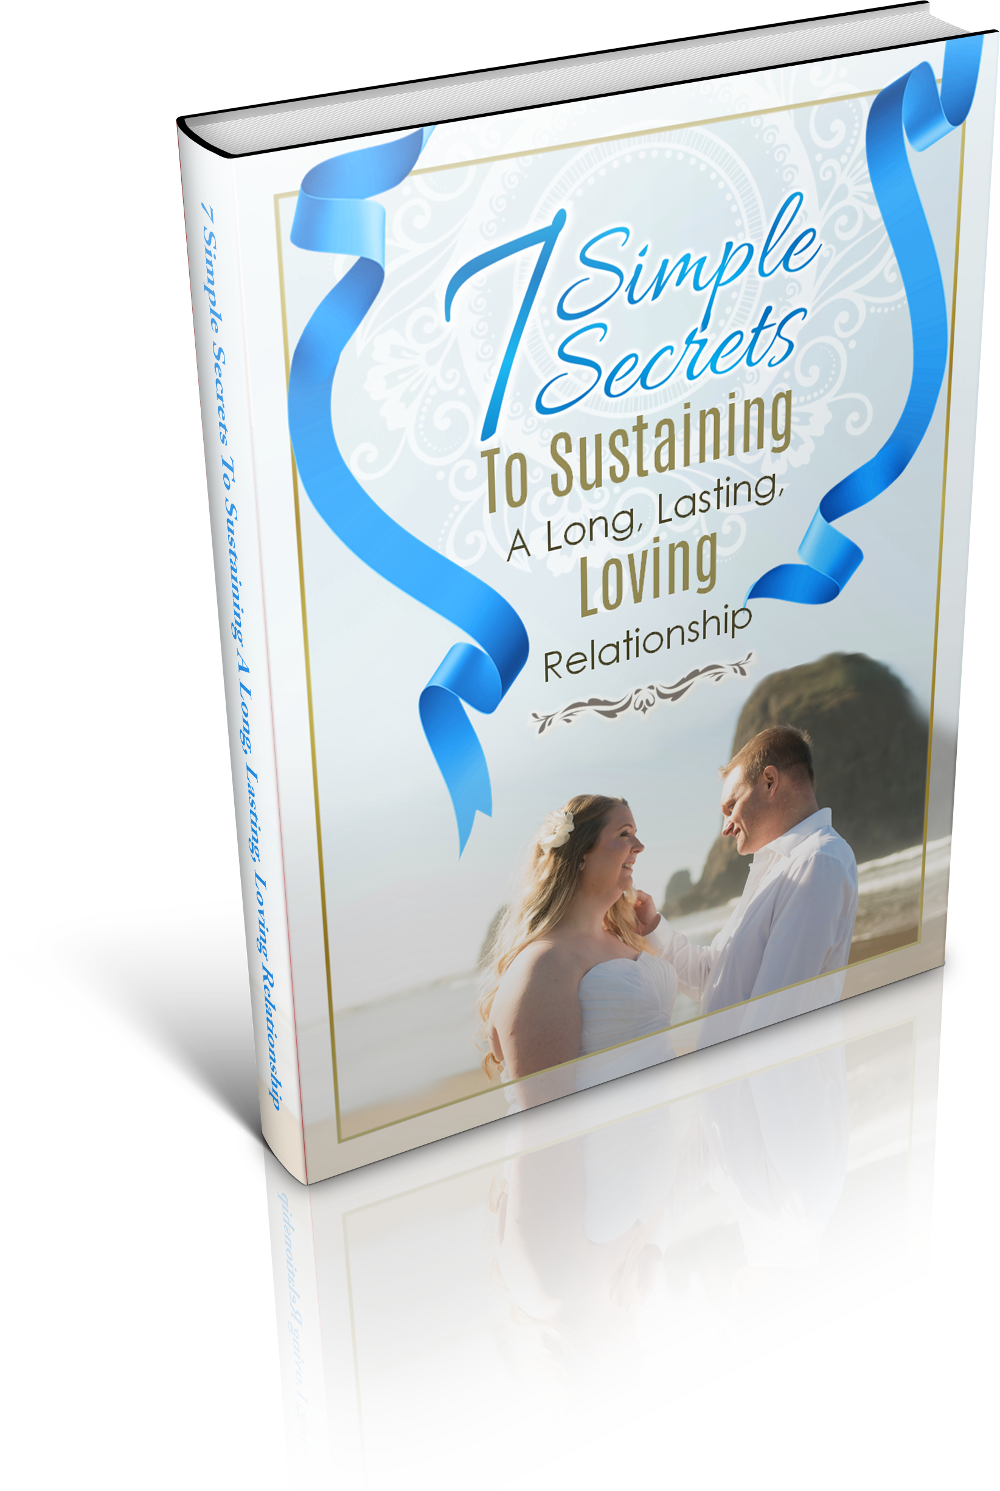 7 simple secrets ebook